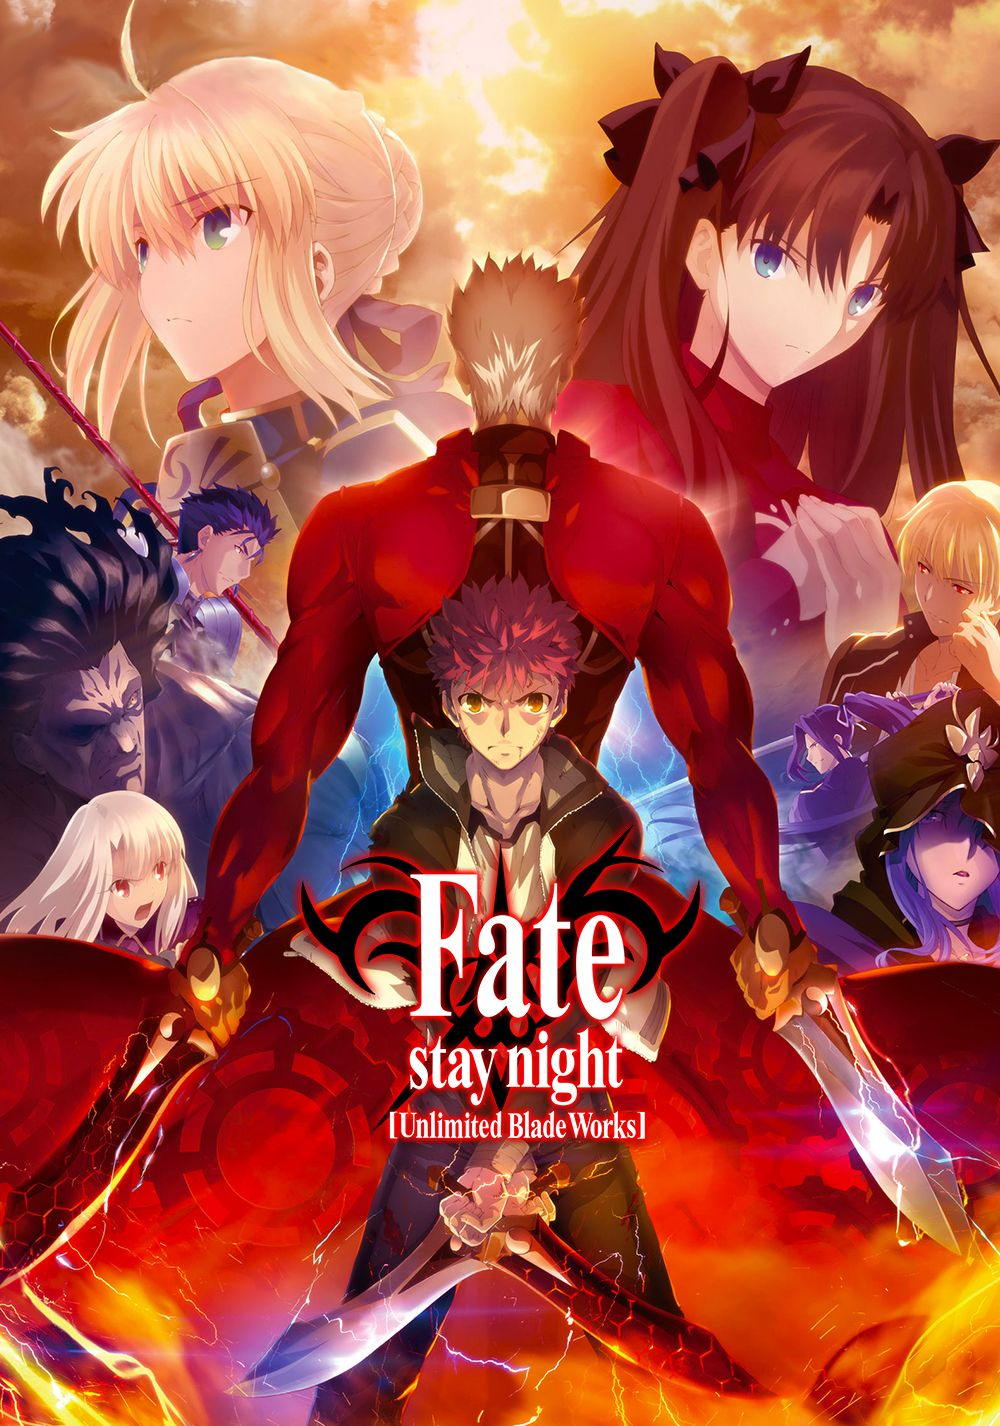 Fate/stay night: Unlimited Blade Works (TV Series 2014–2015) - IMDb